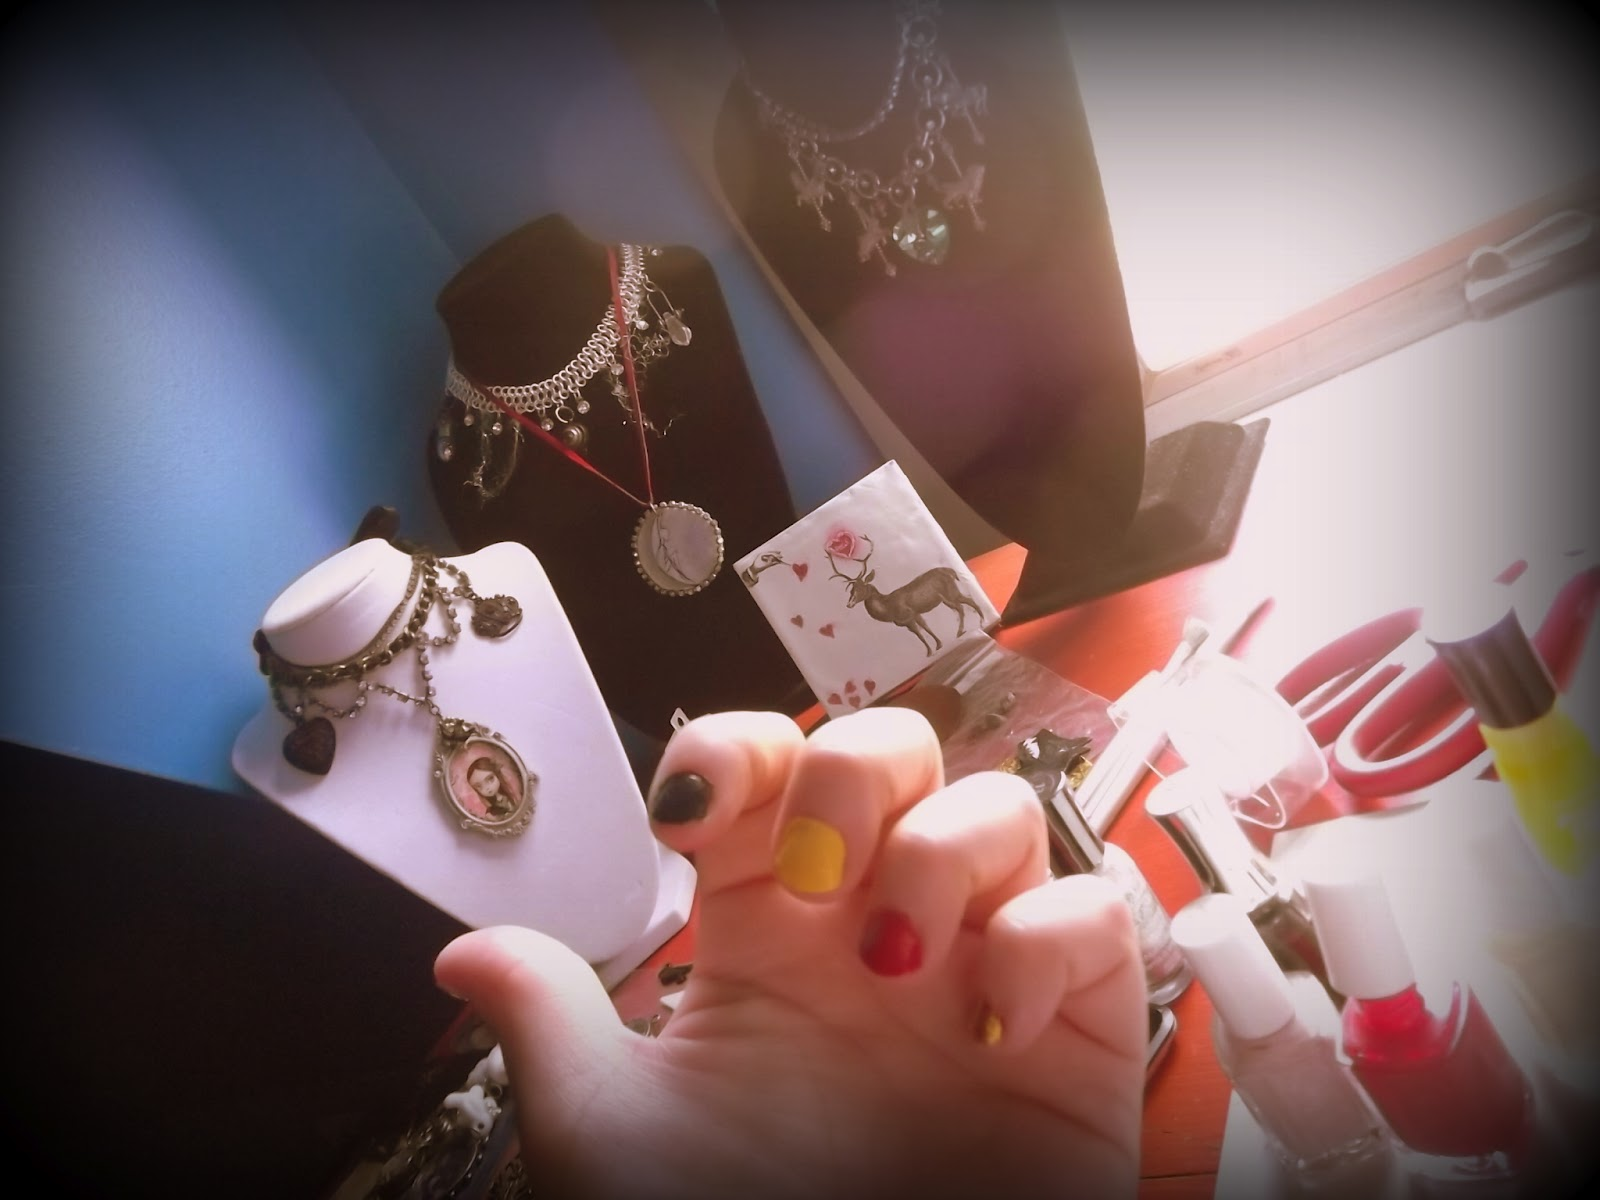 Avabunny retro nail art you can do yourself at home - Nail designs do it yourself at home ...